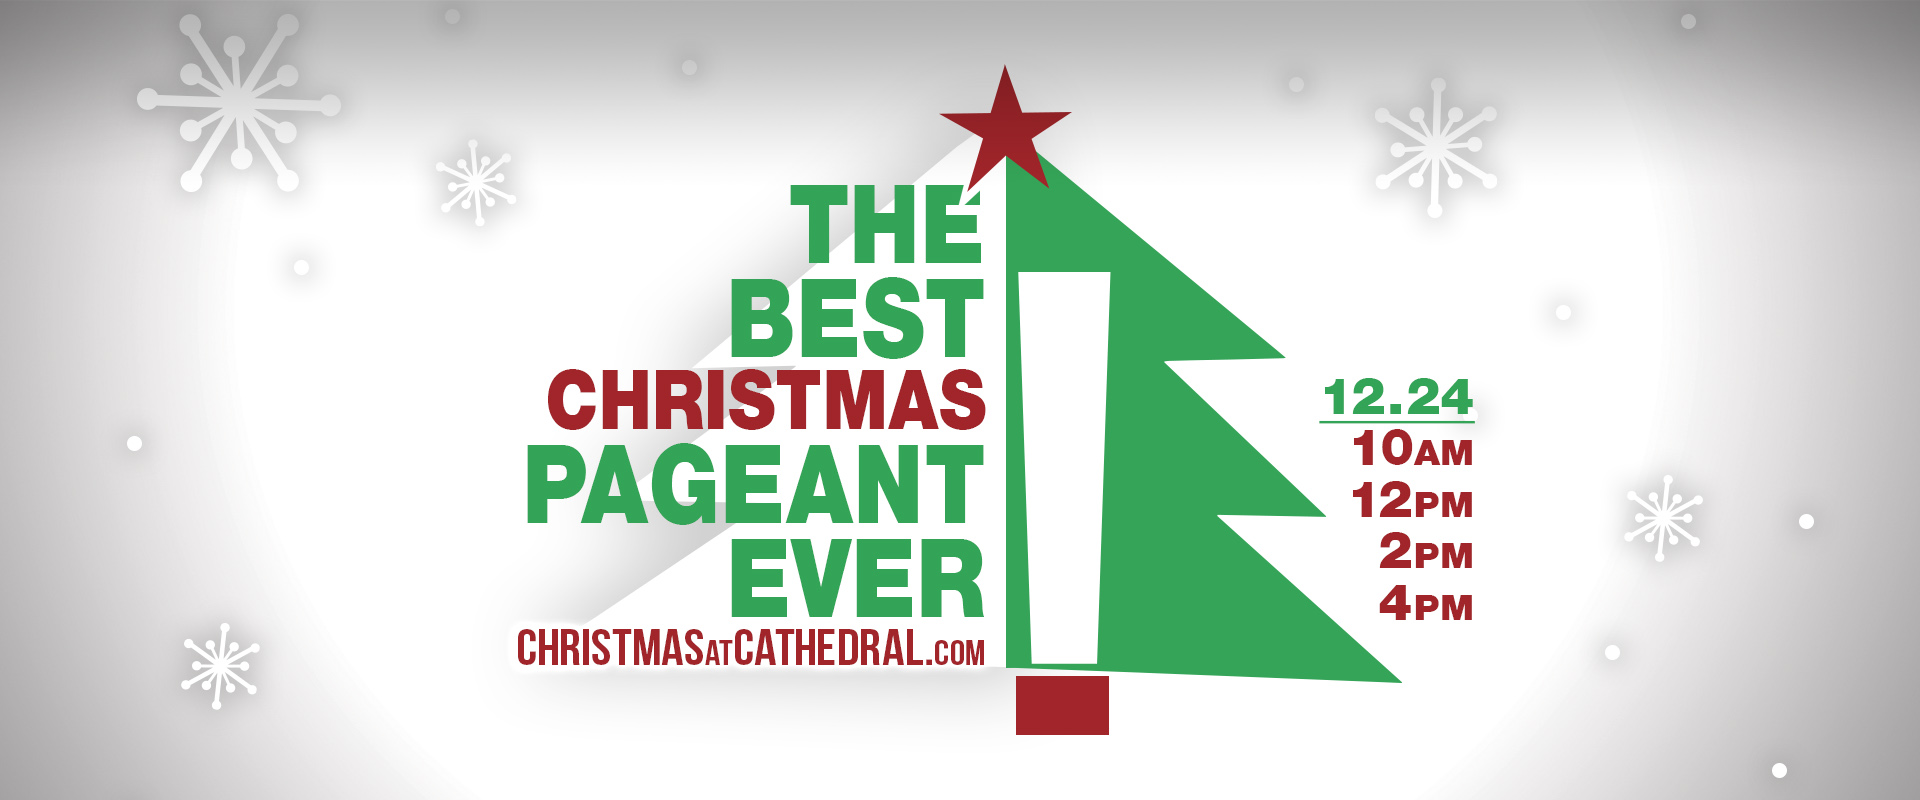 The Best Christmas Pageant Ever - December 24 slide